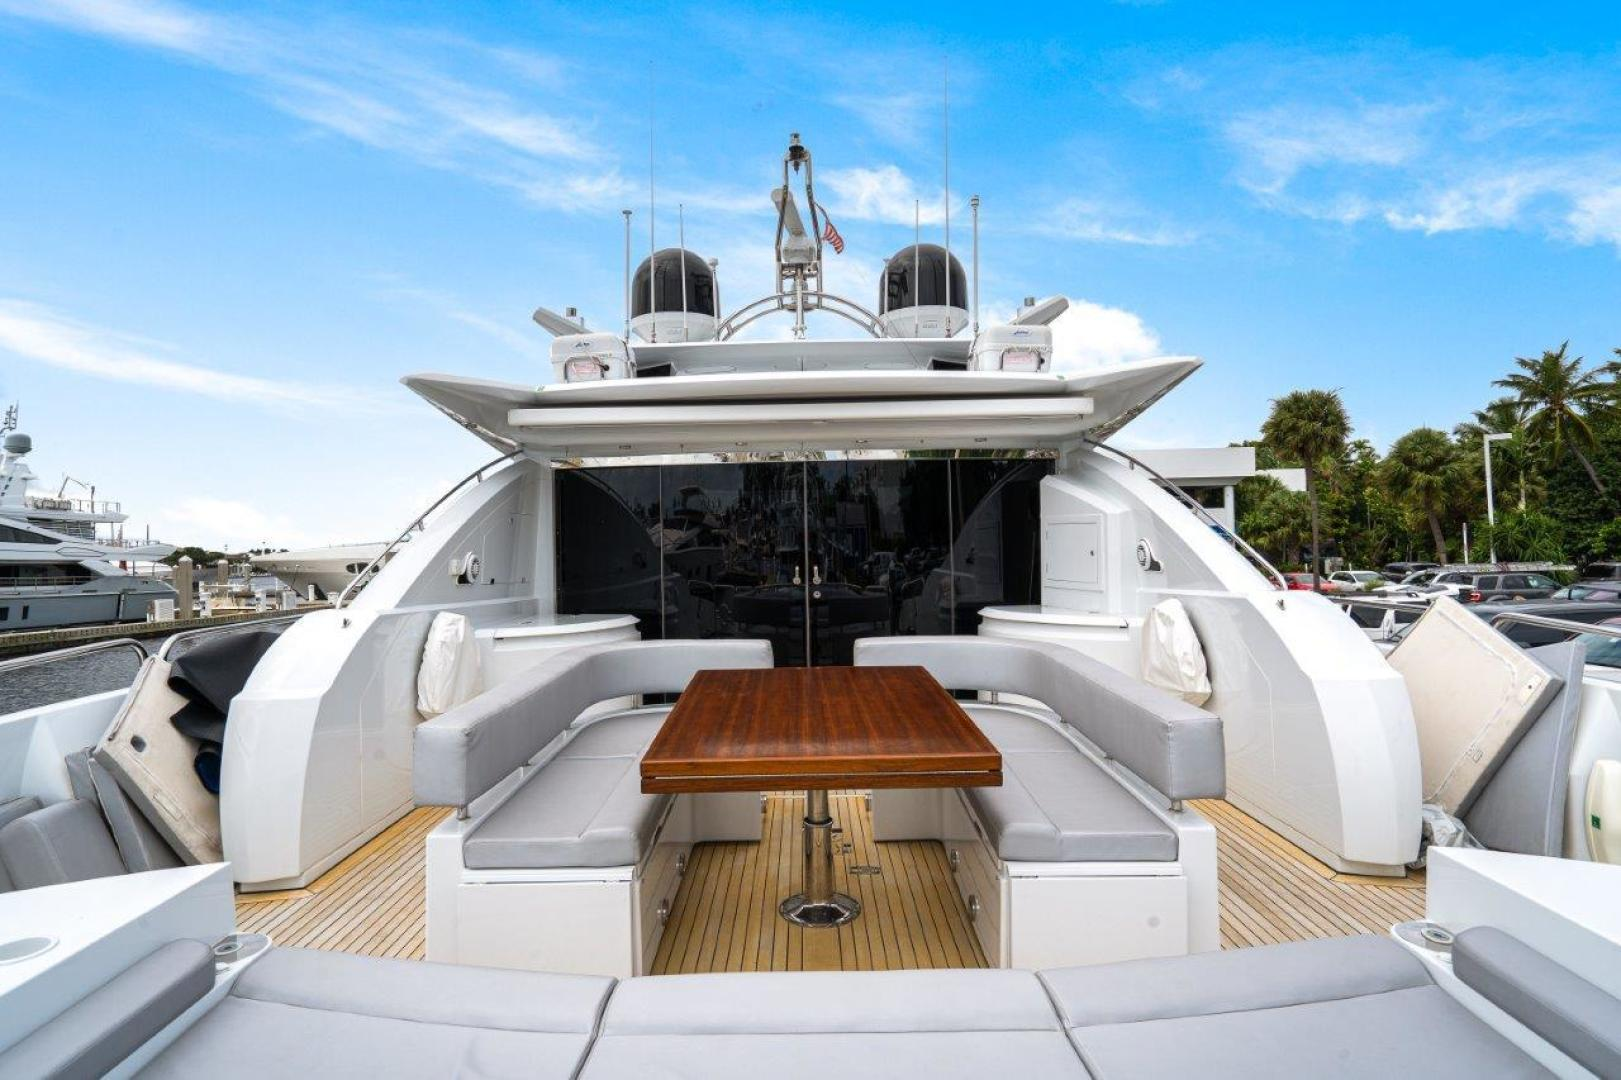 Sunseeker-Predator 2008-Double D Fort Lauderdale-Florida-United States-1502143 | Thumbnail